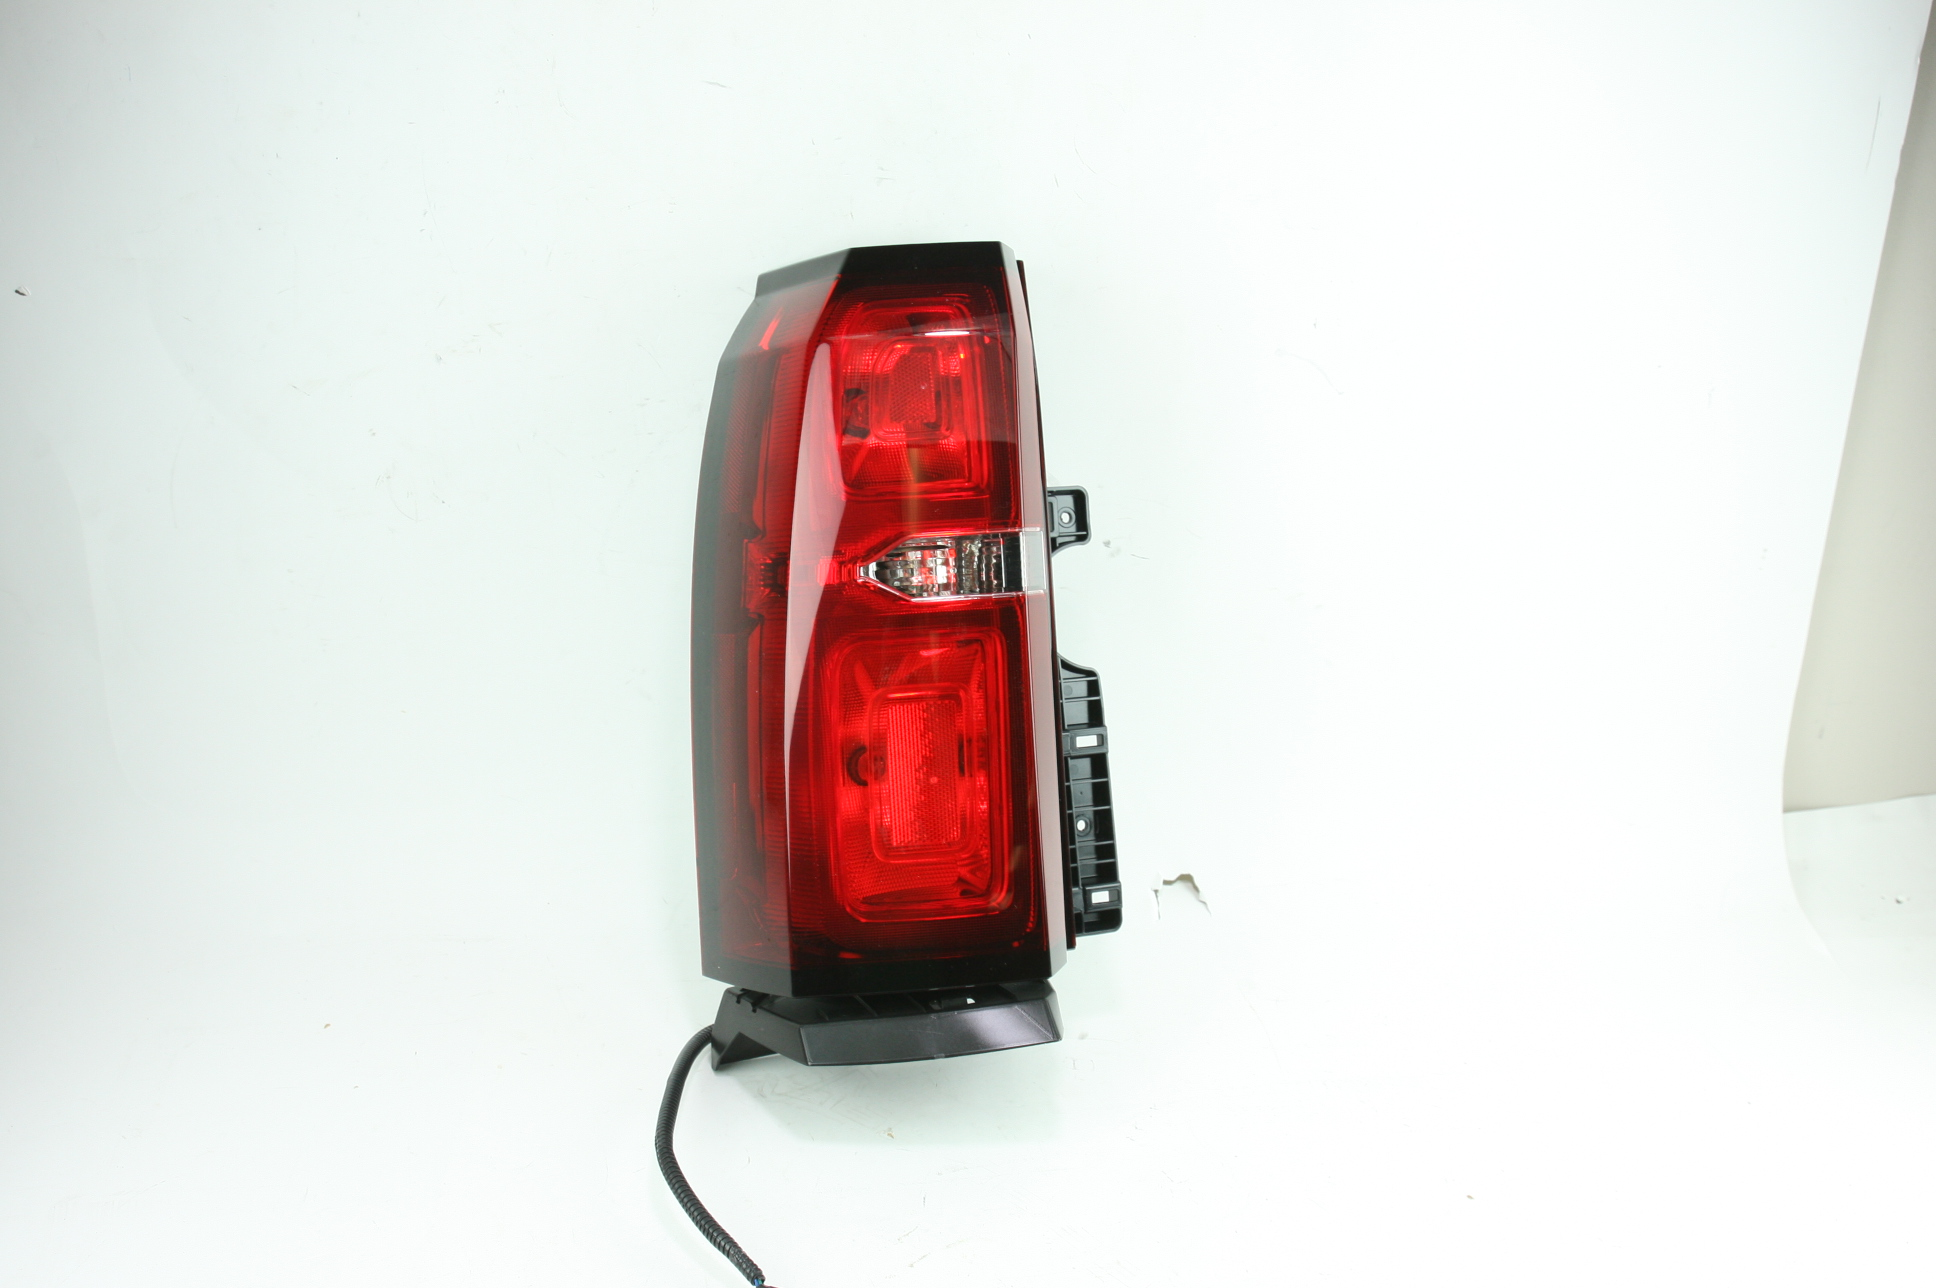 *** New Genuine OEM 23407432 GM Left Tail Lamp 15-19 Chevy Tahoe & Suburban - image 1